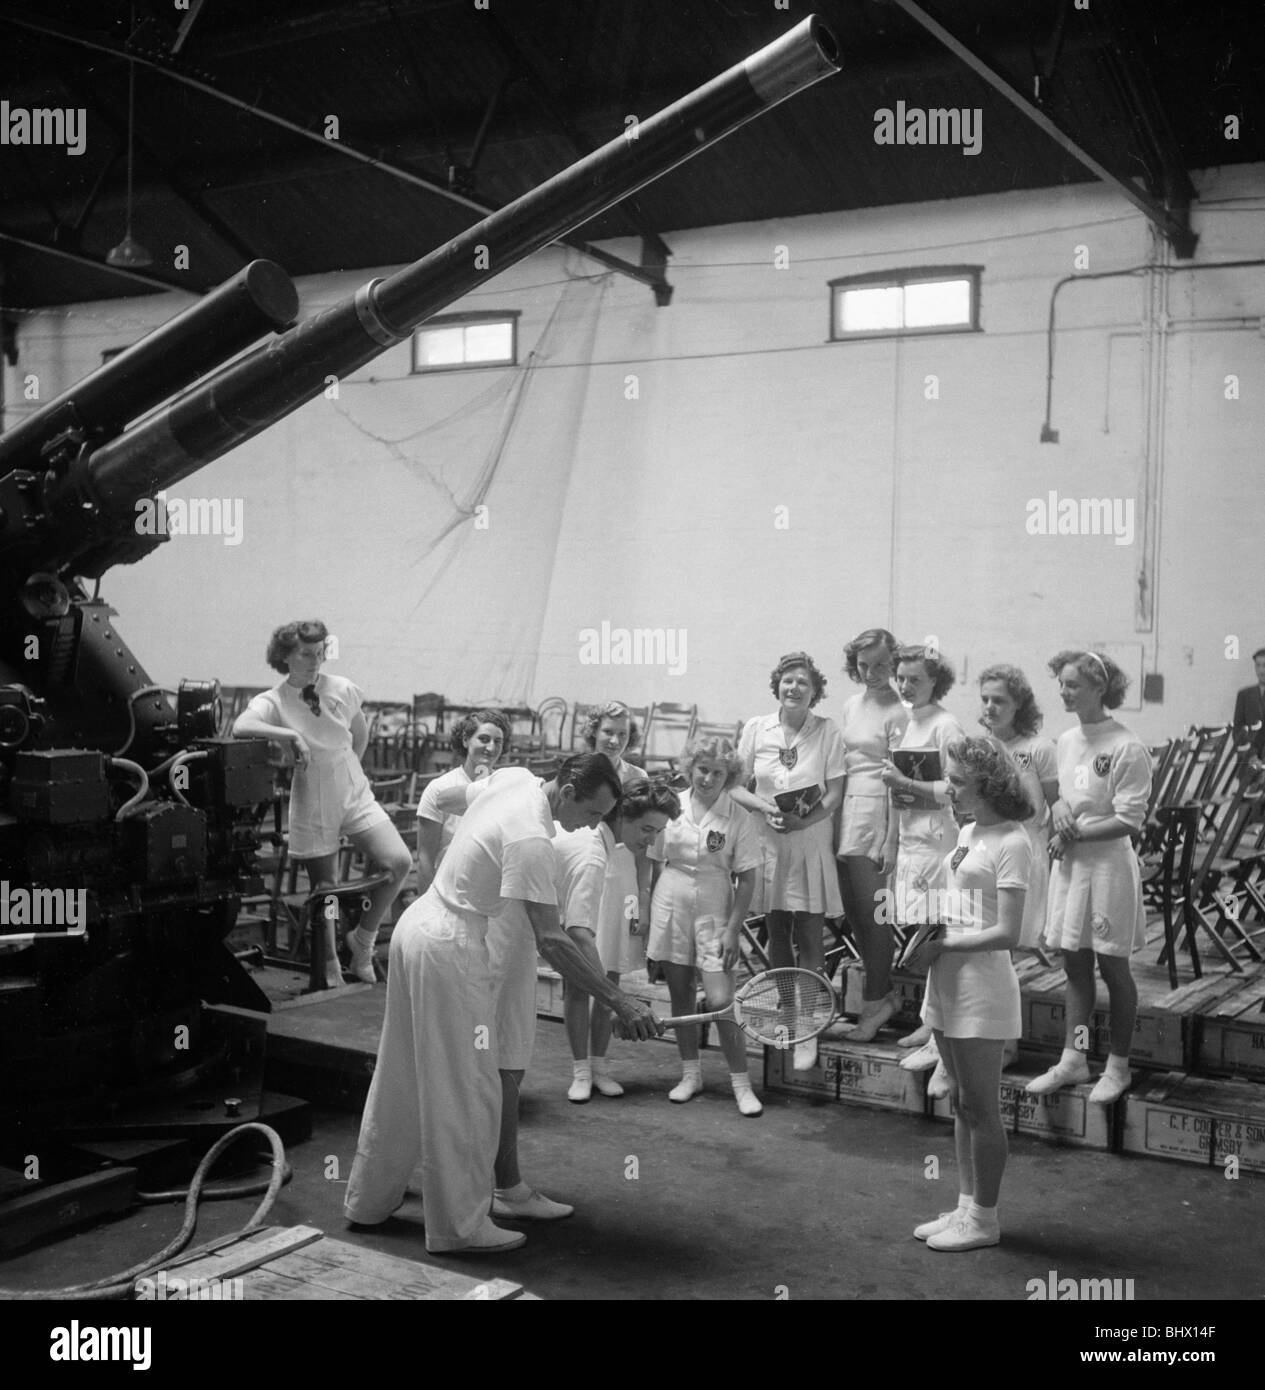 British tennis star Fred Perry demonstrates to members of the Yarrow Youth Club in Cleethorpes, Lancashire. Circa - Stock Image